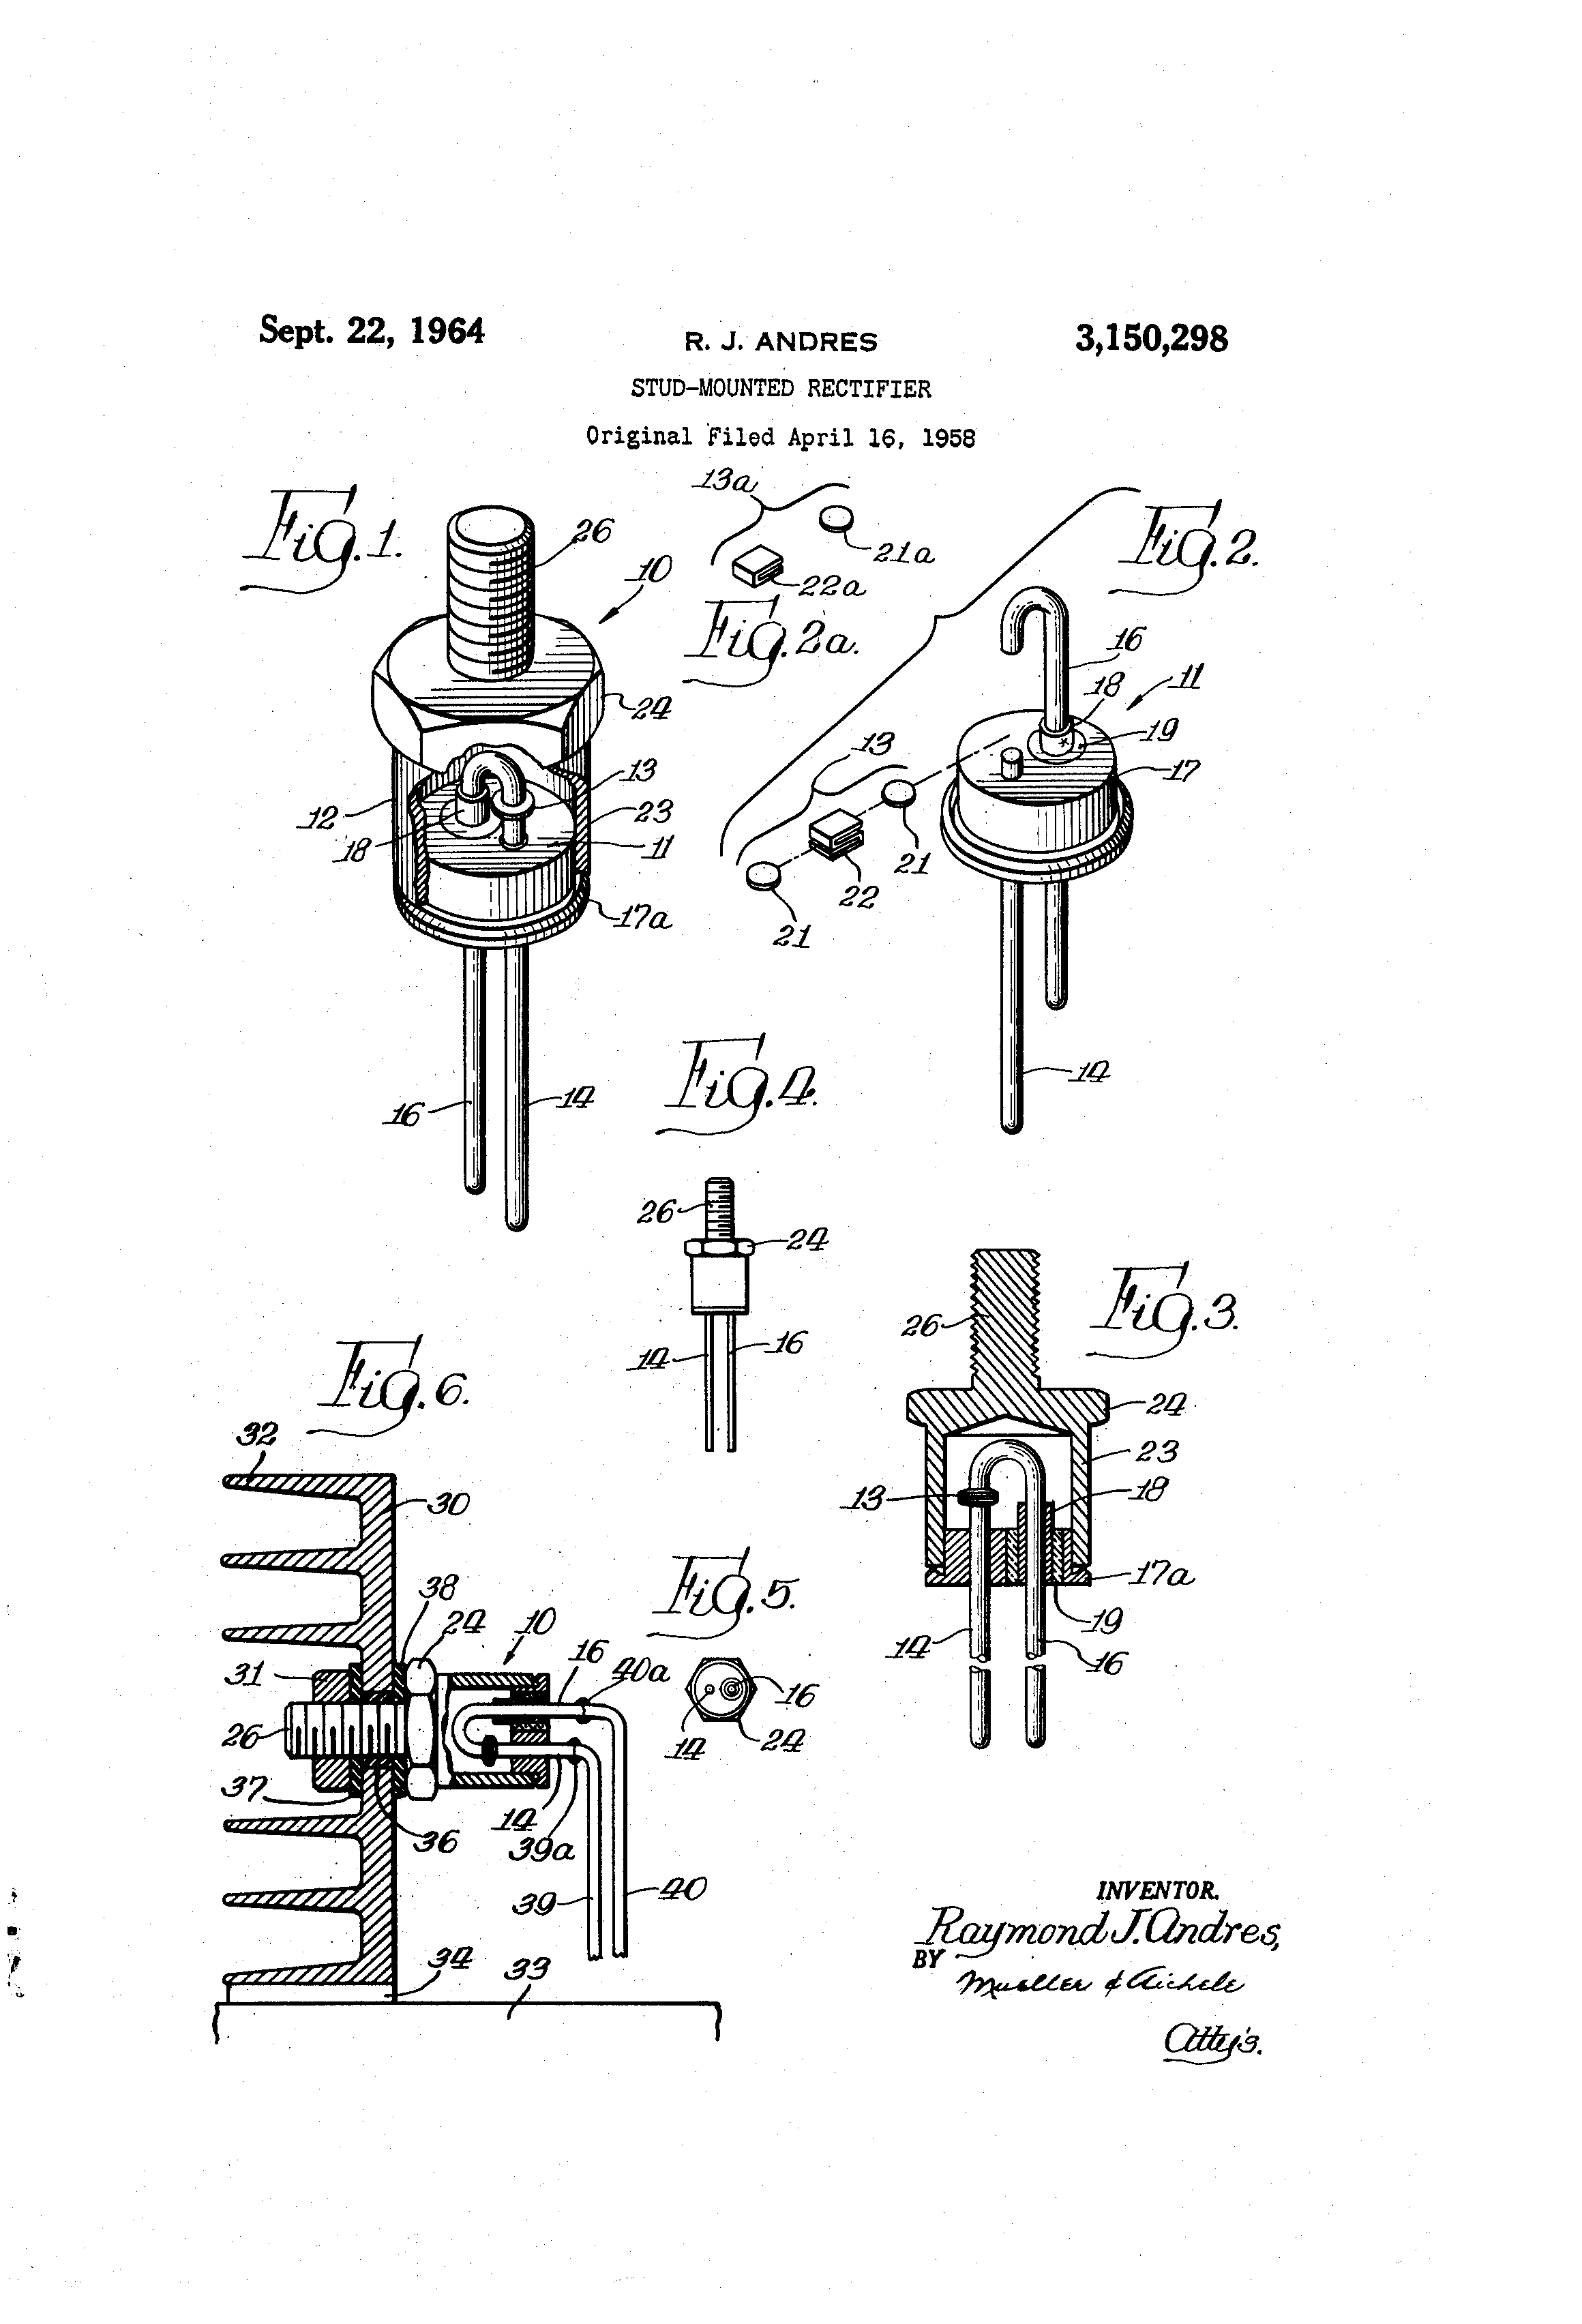 patent us3150298 - stud-mounted rectifier